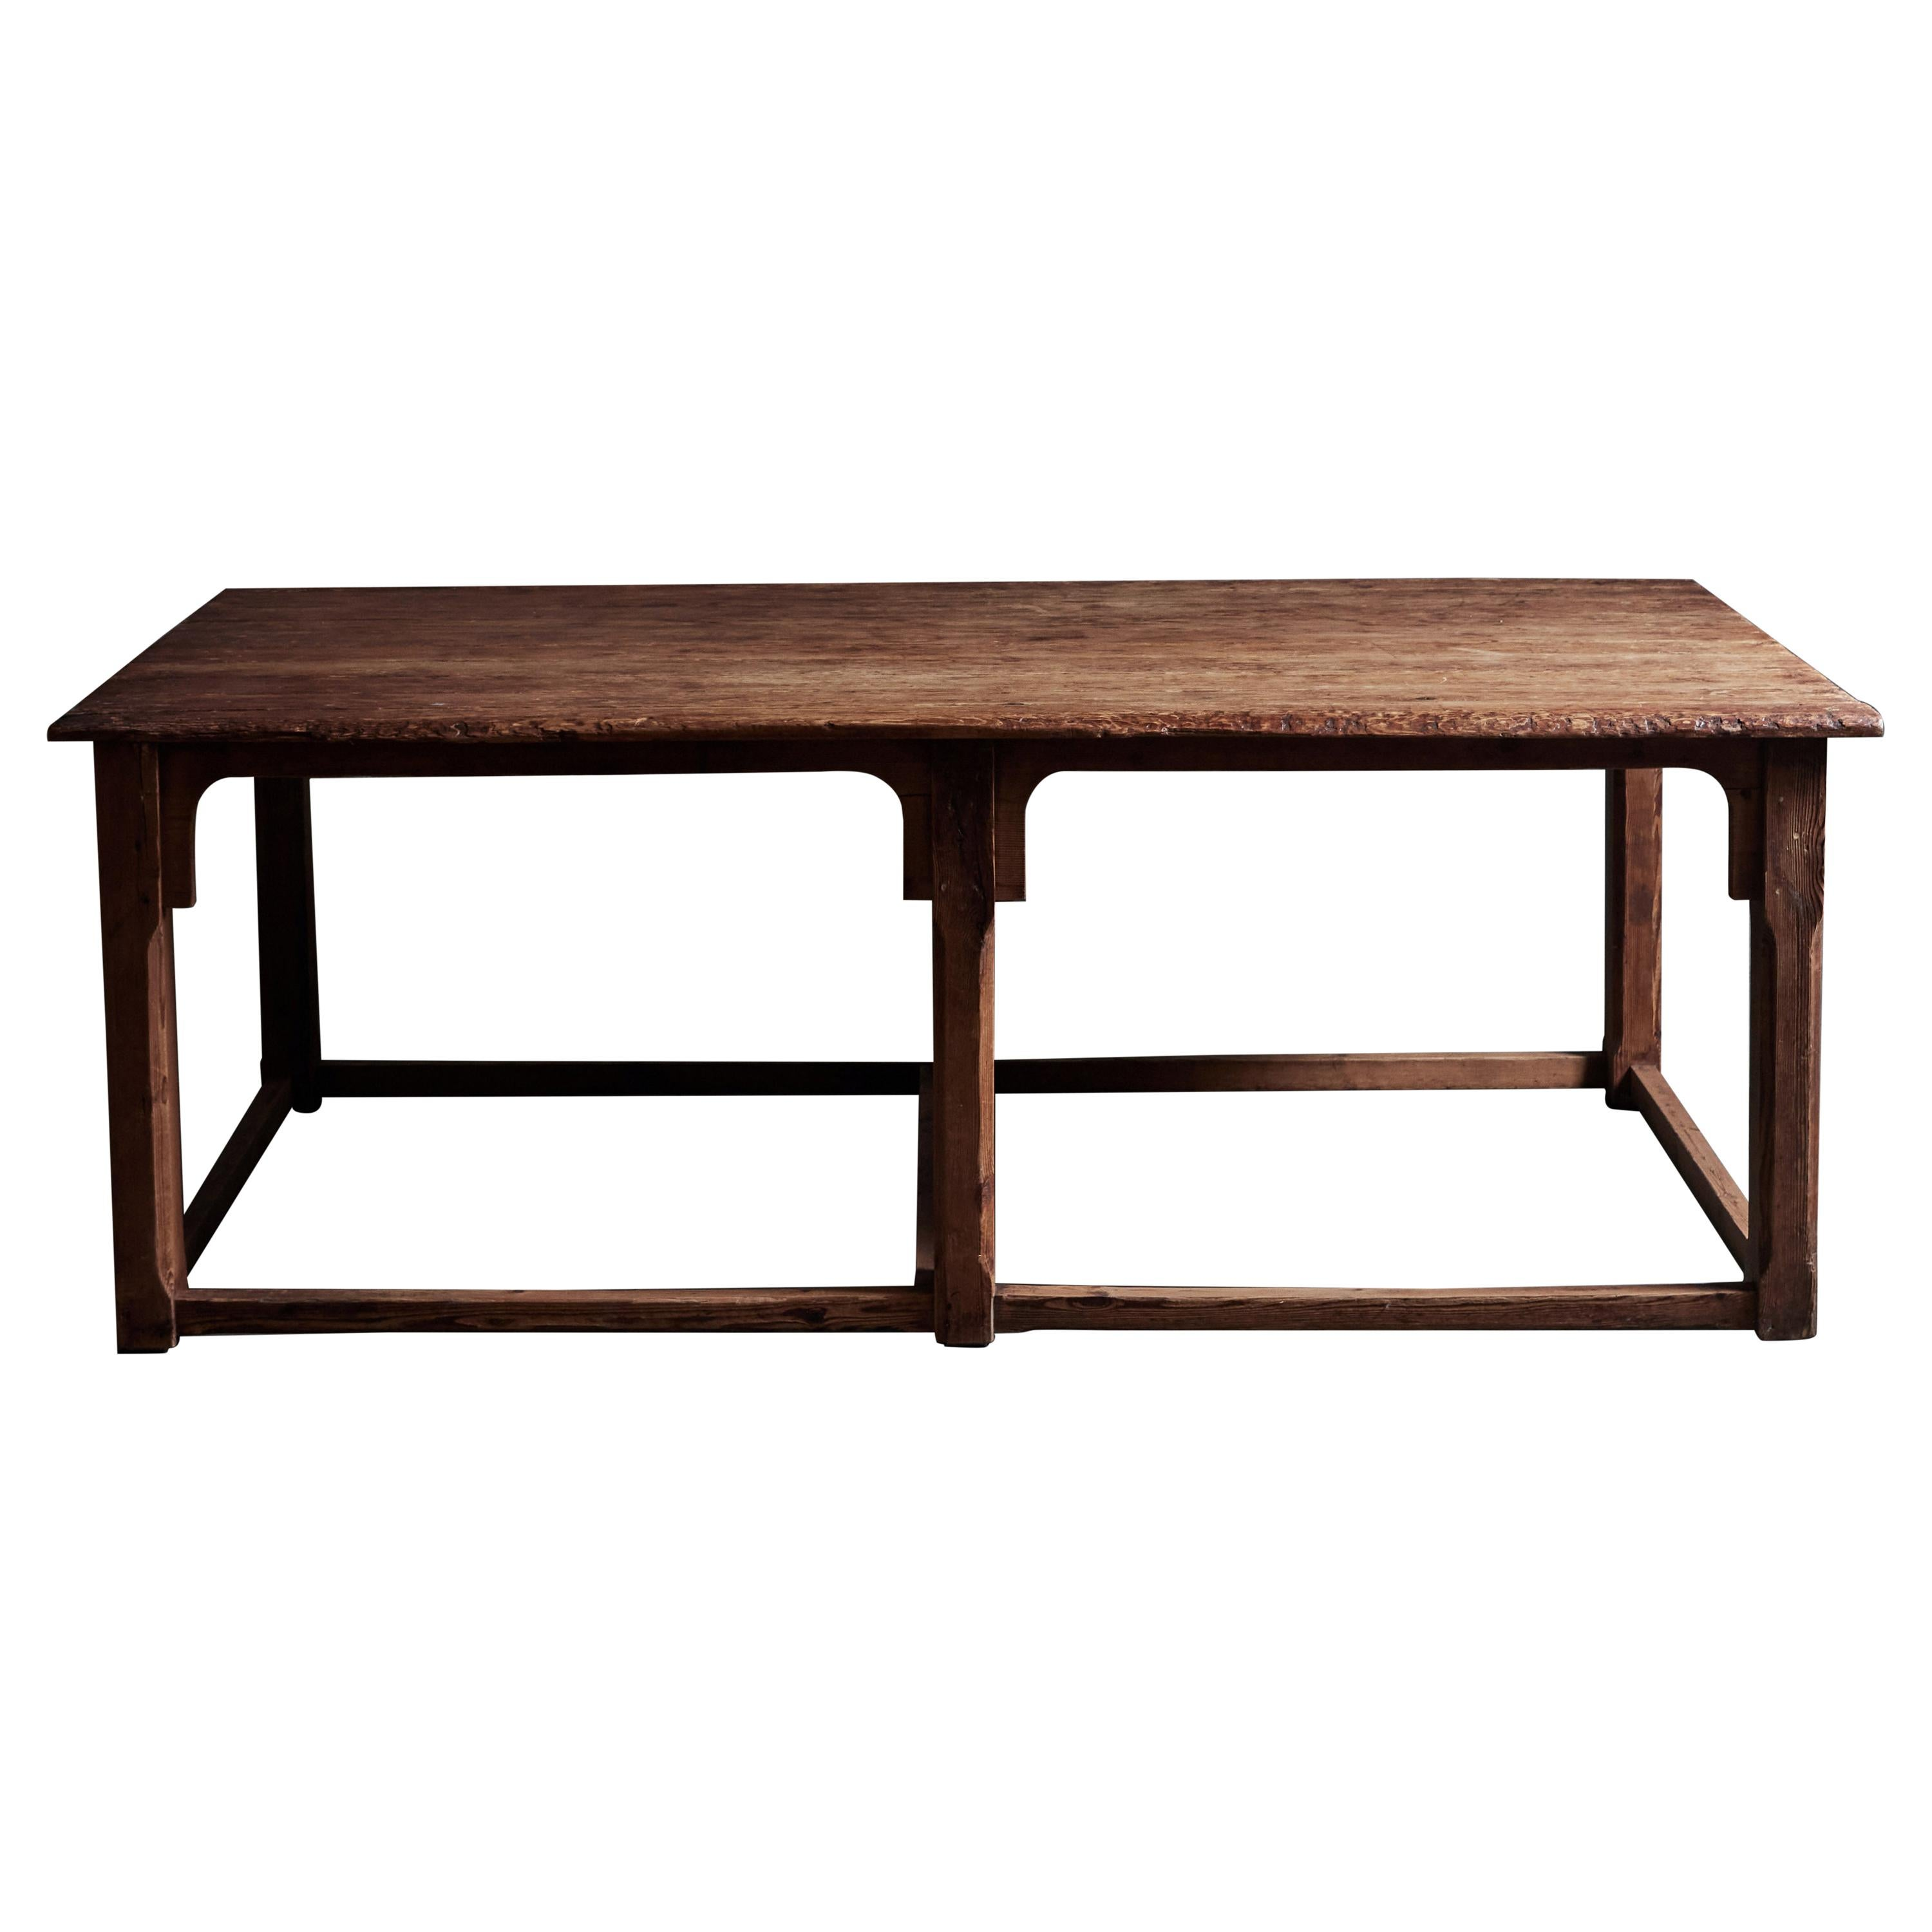 19th Century French Refectory Table